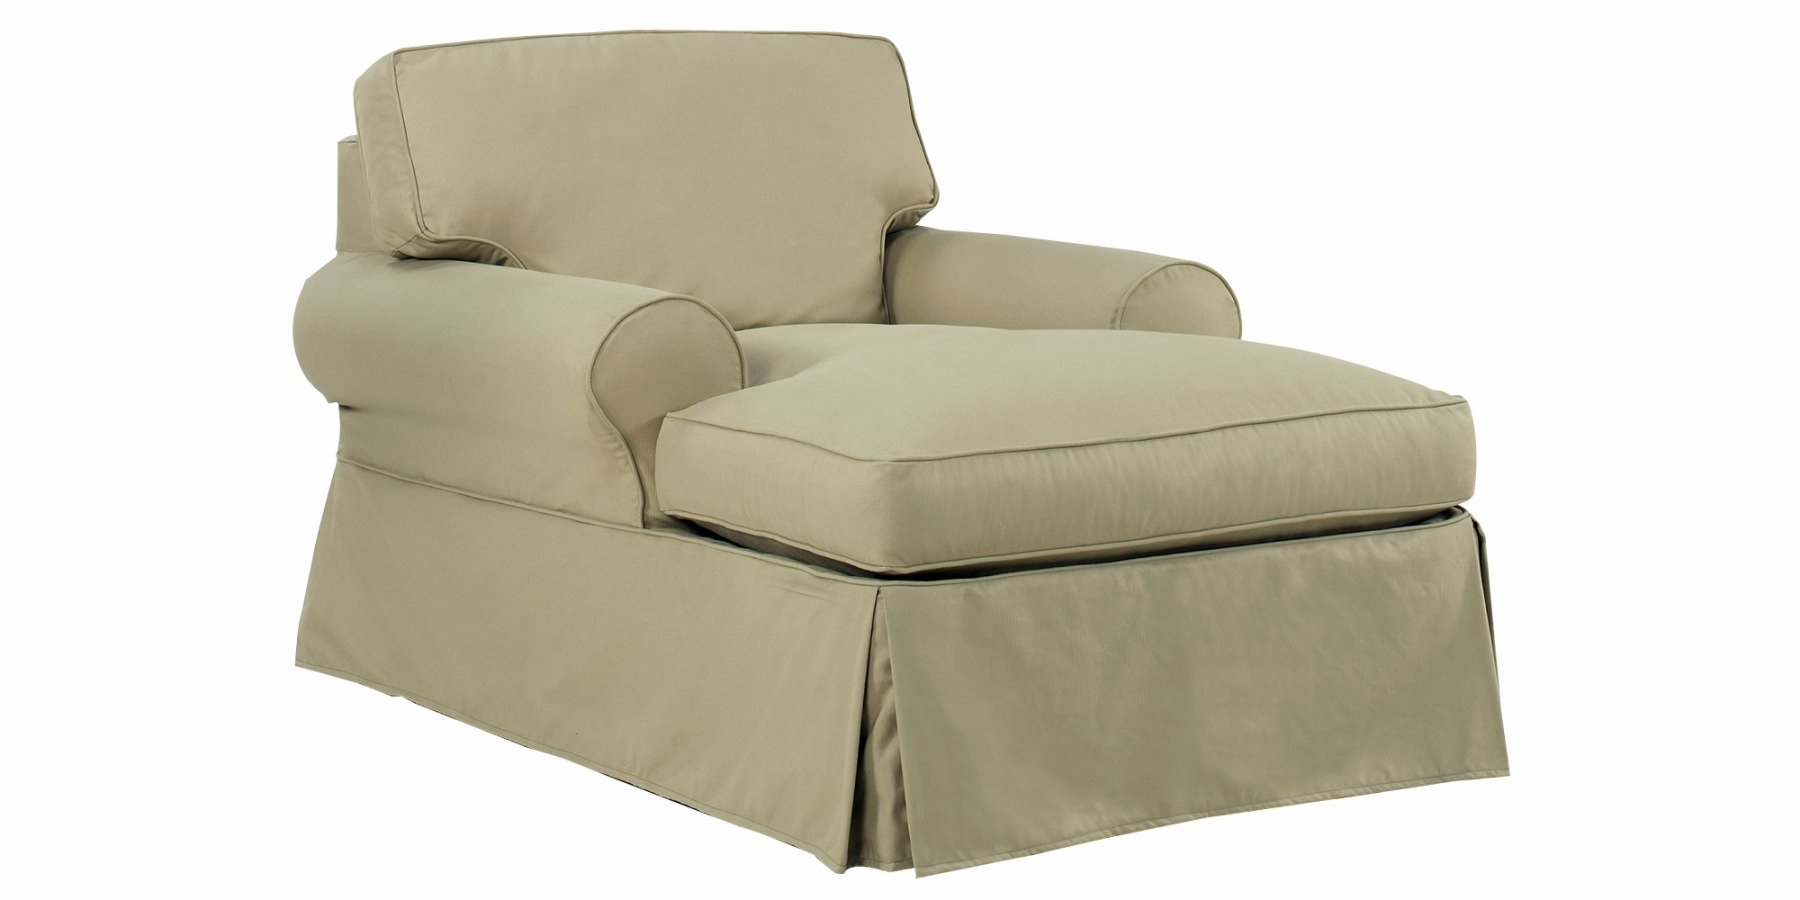 Slip Covers Chair And Black Jersey Sofa Stretch Slipcover Couch For Sofa And Chair Covers (Image 9 of 15)